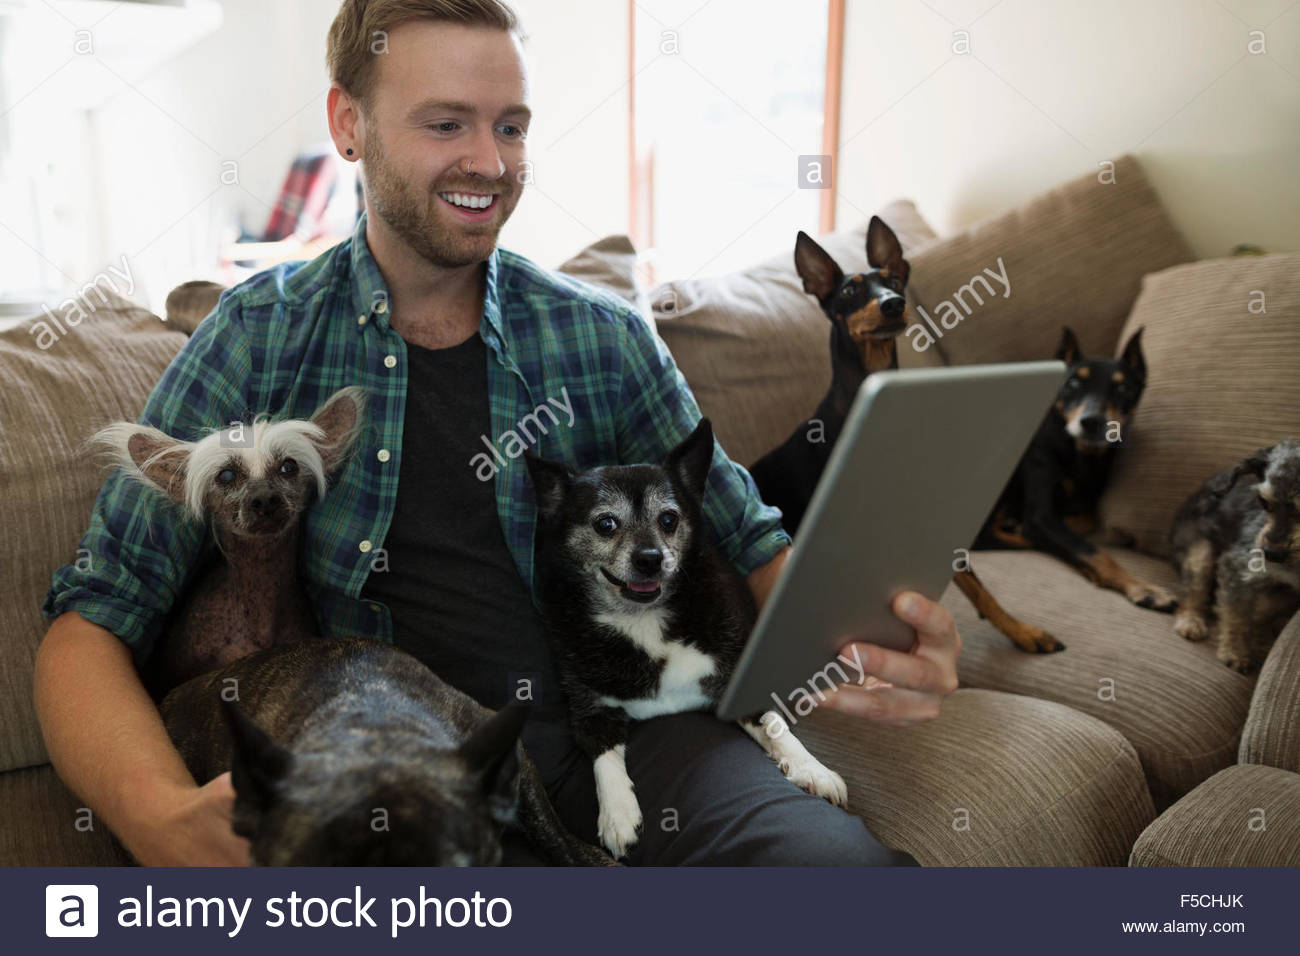 Man with six dogs using digital tablet sofa Stock Photo